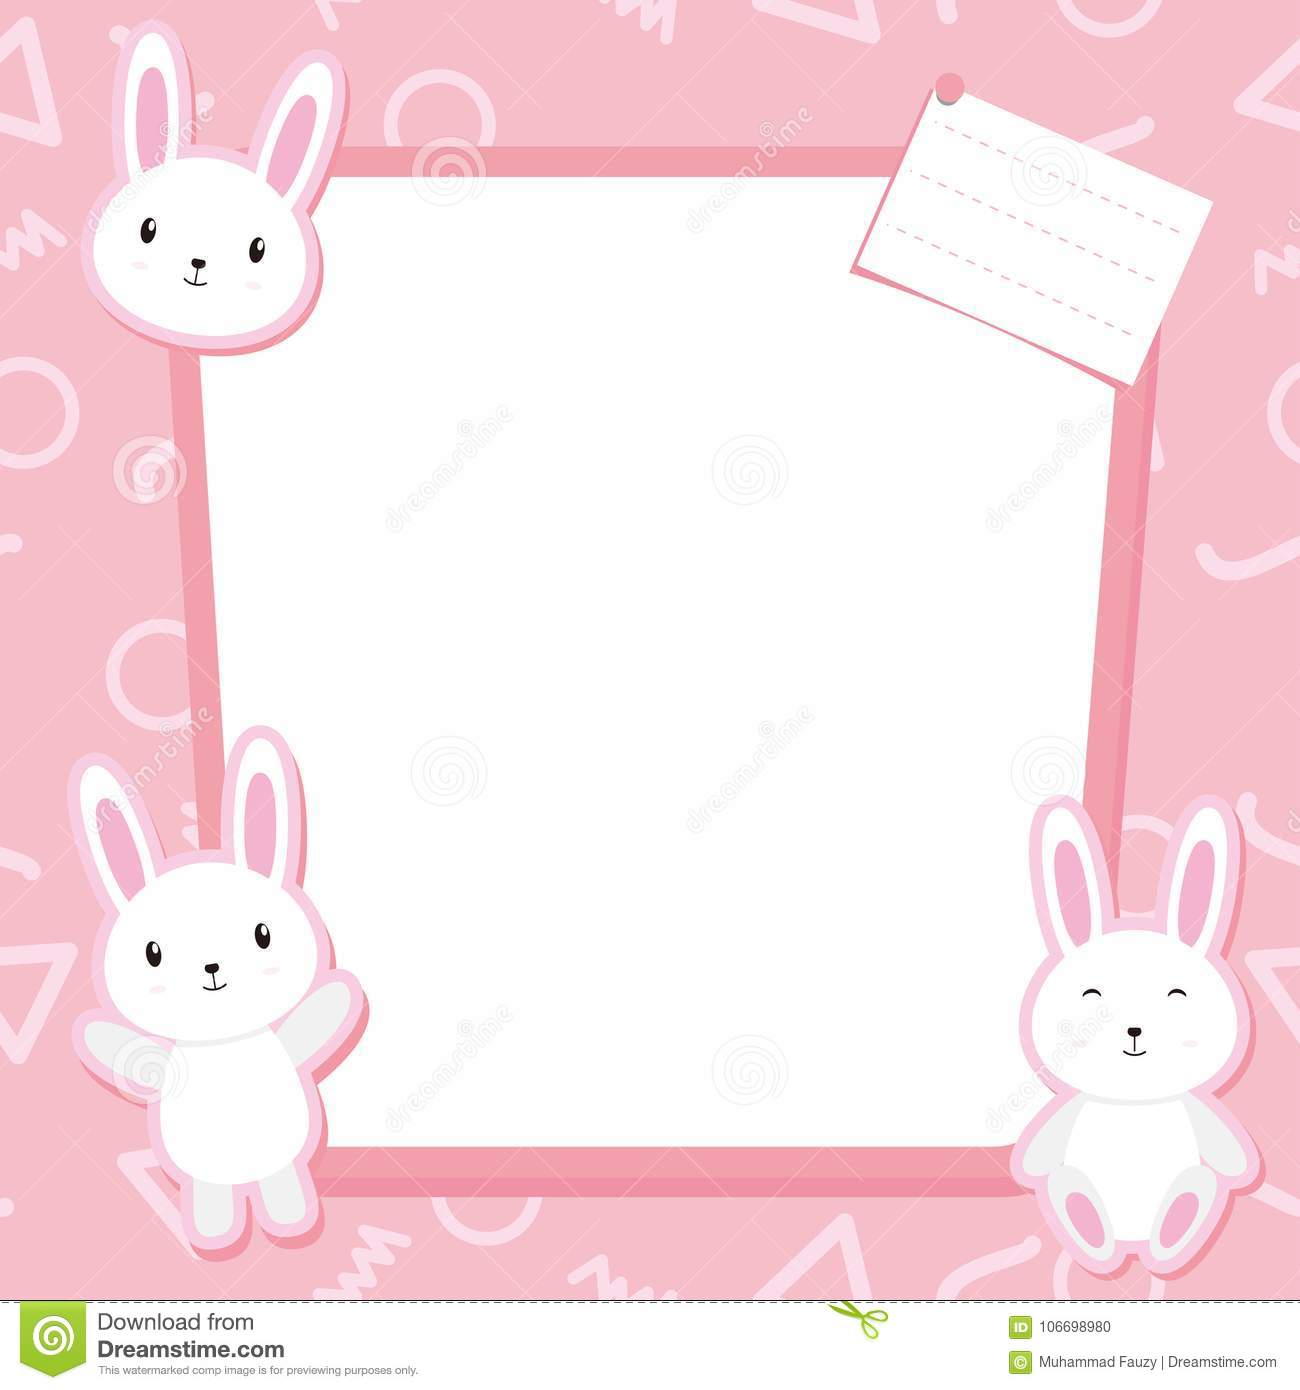 Cute Bunny Frame Vector With Pink Color Stock Vector